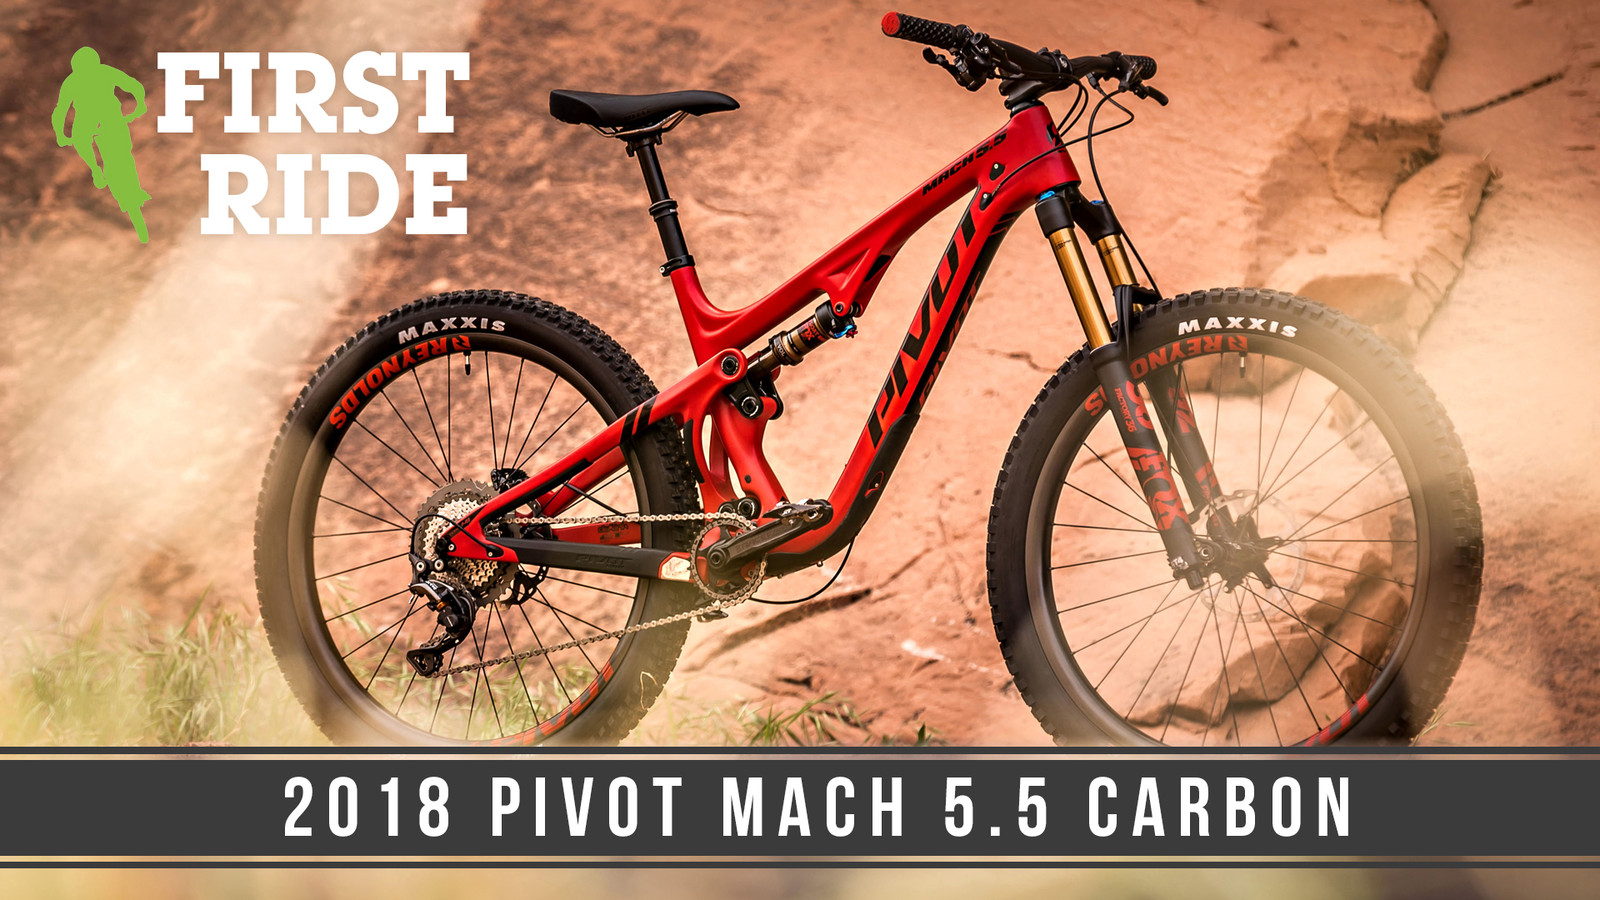 First Ride: 2018 Pivot Mach 5.5 Carbon – A Ripping Next-Gen Trail Bike